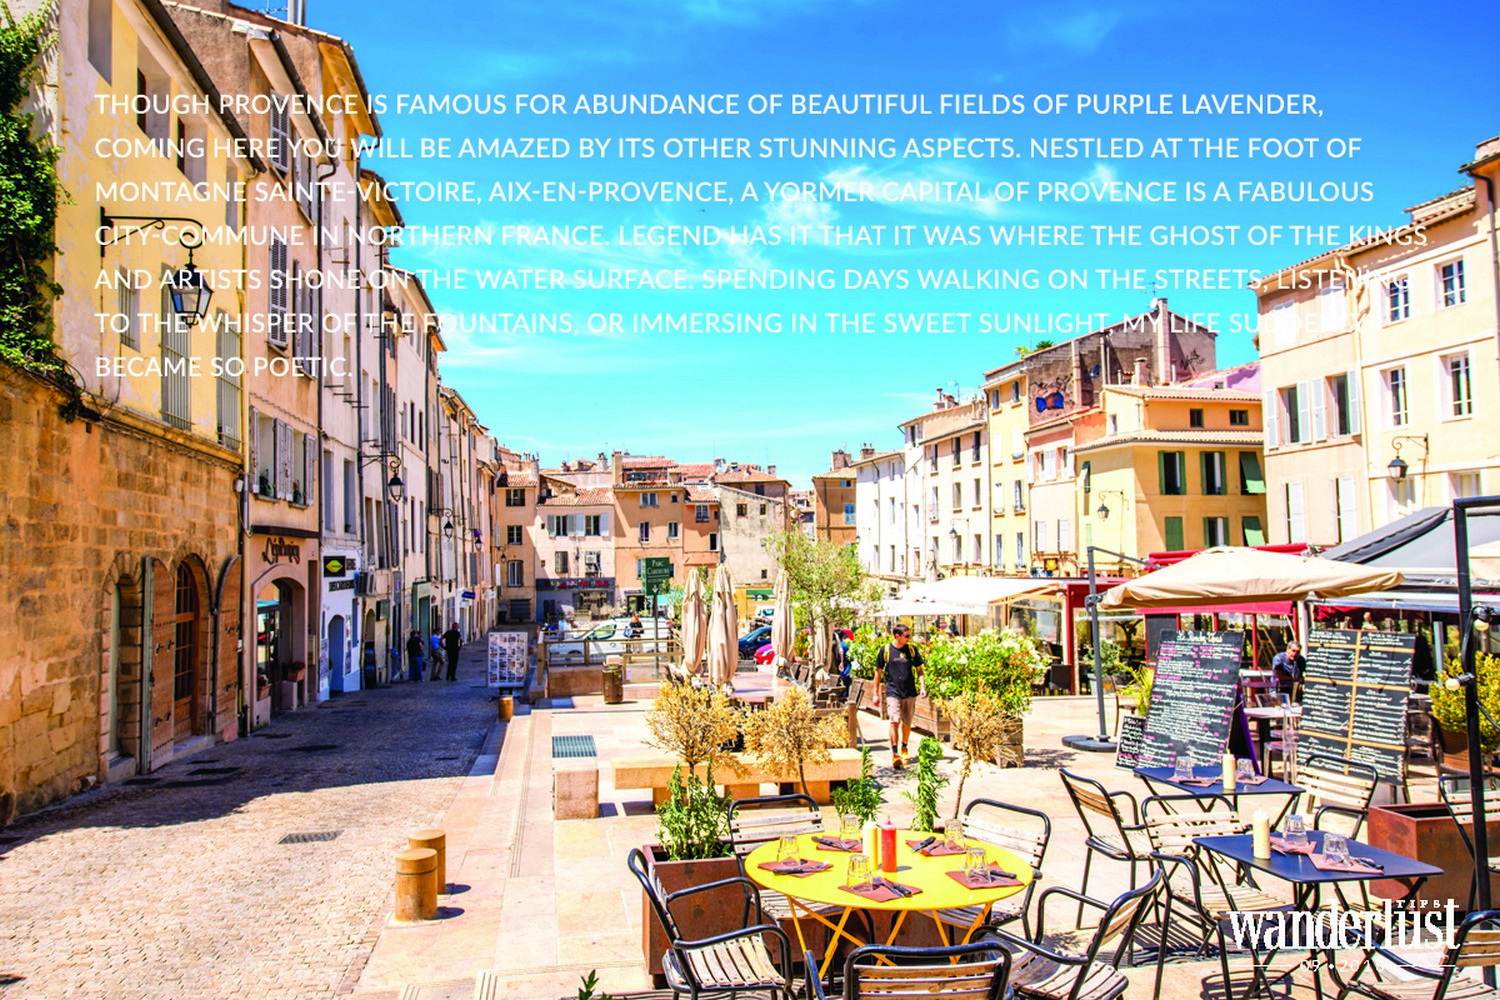 Wanderlust Tips Magazine | What is awaiting you in Aix-en-provence?